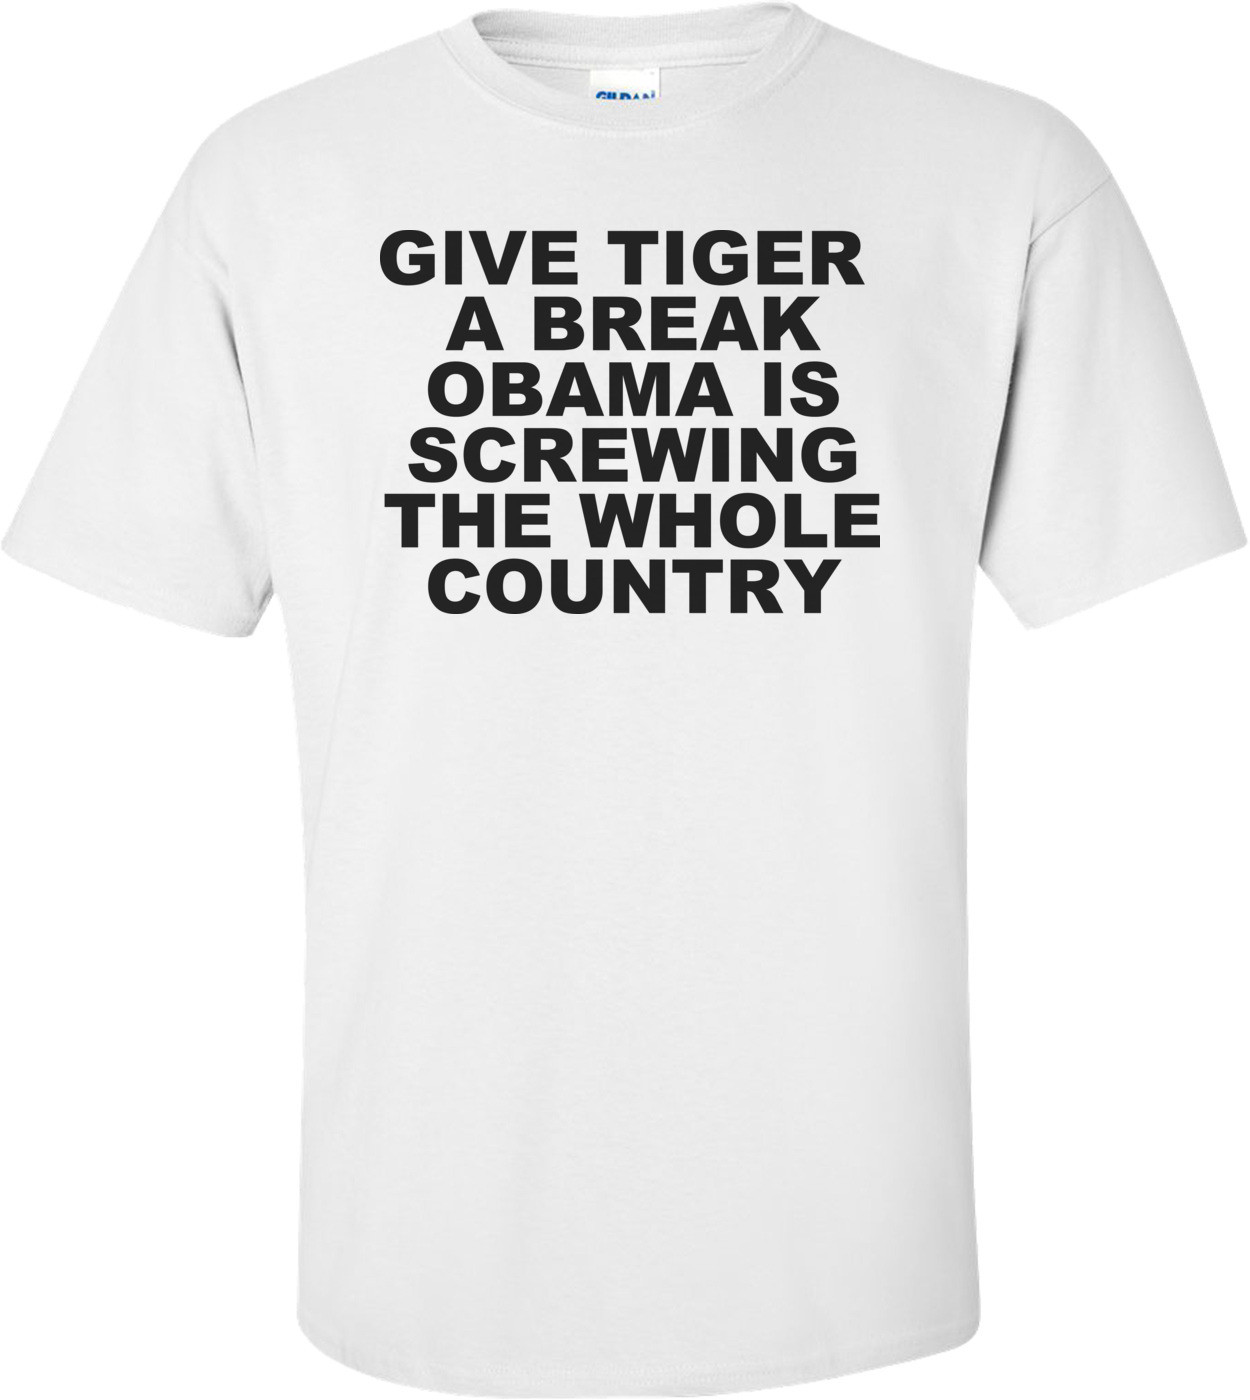 Give Tiger A Break Obama Is Screwing The Whole Country Anti Obama T-shirt